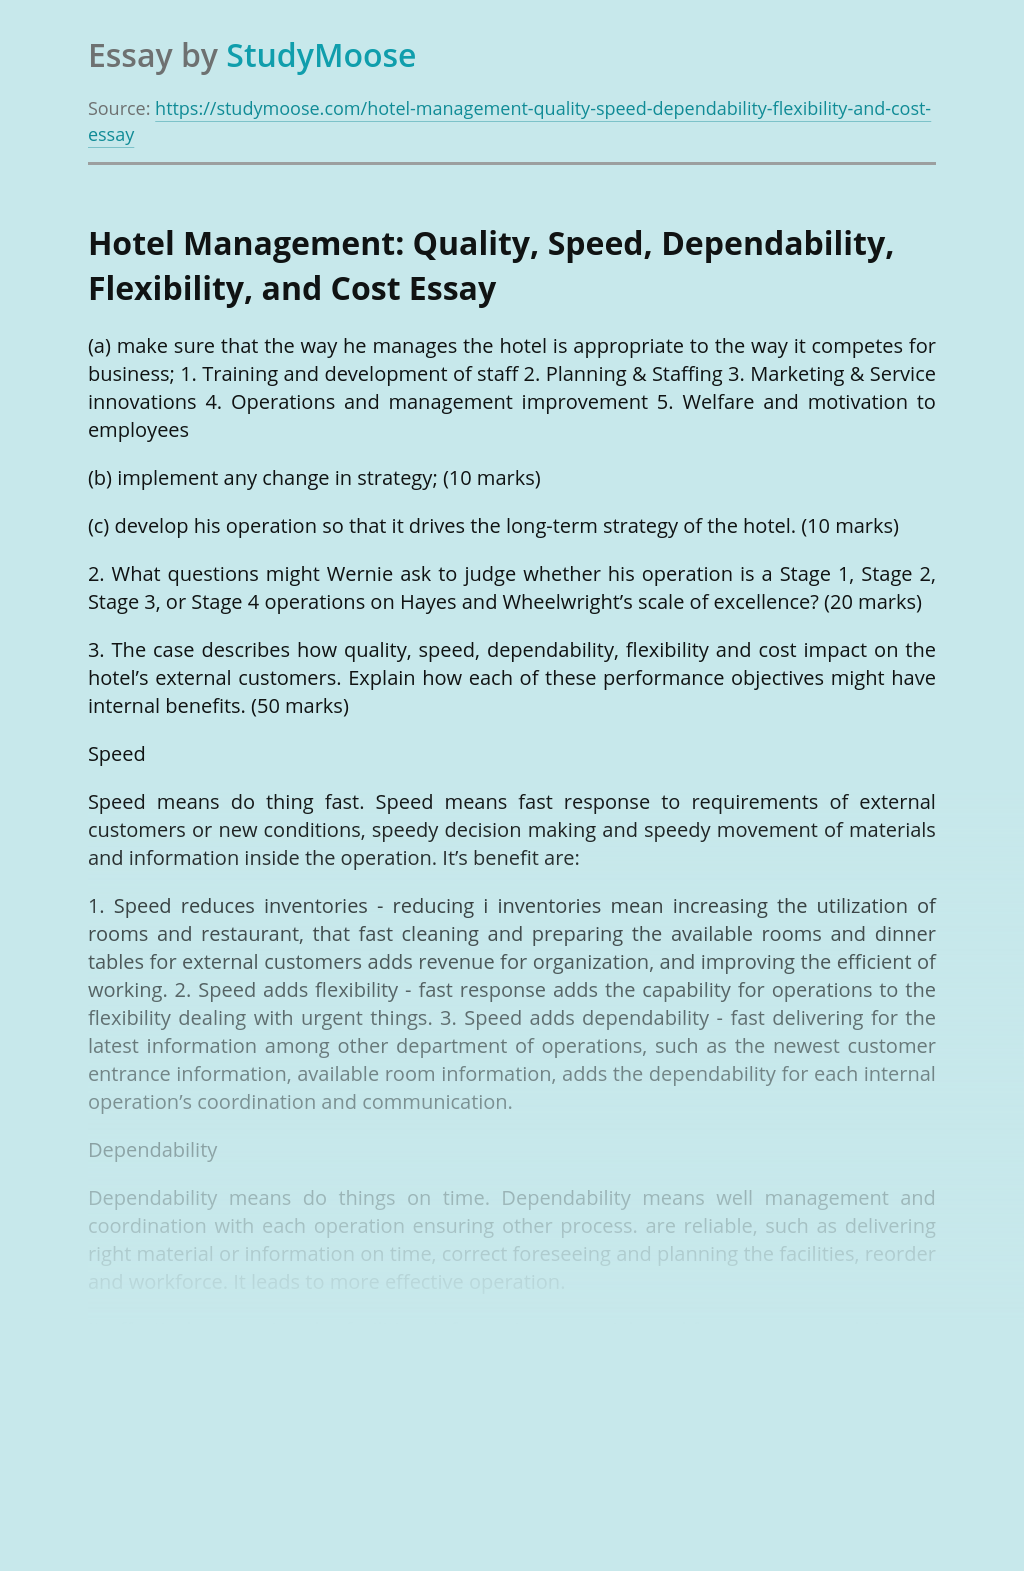 Hotel Management: Quality, Speed, Dependability, Flexibility, and Cost